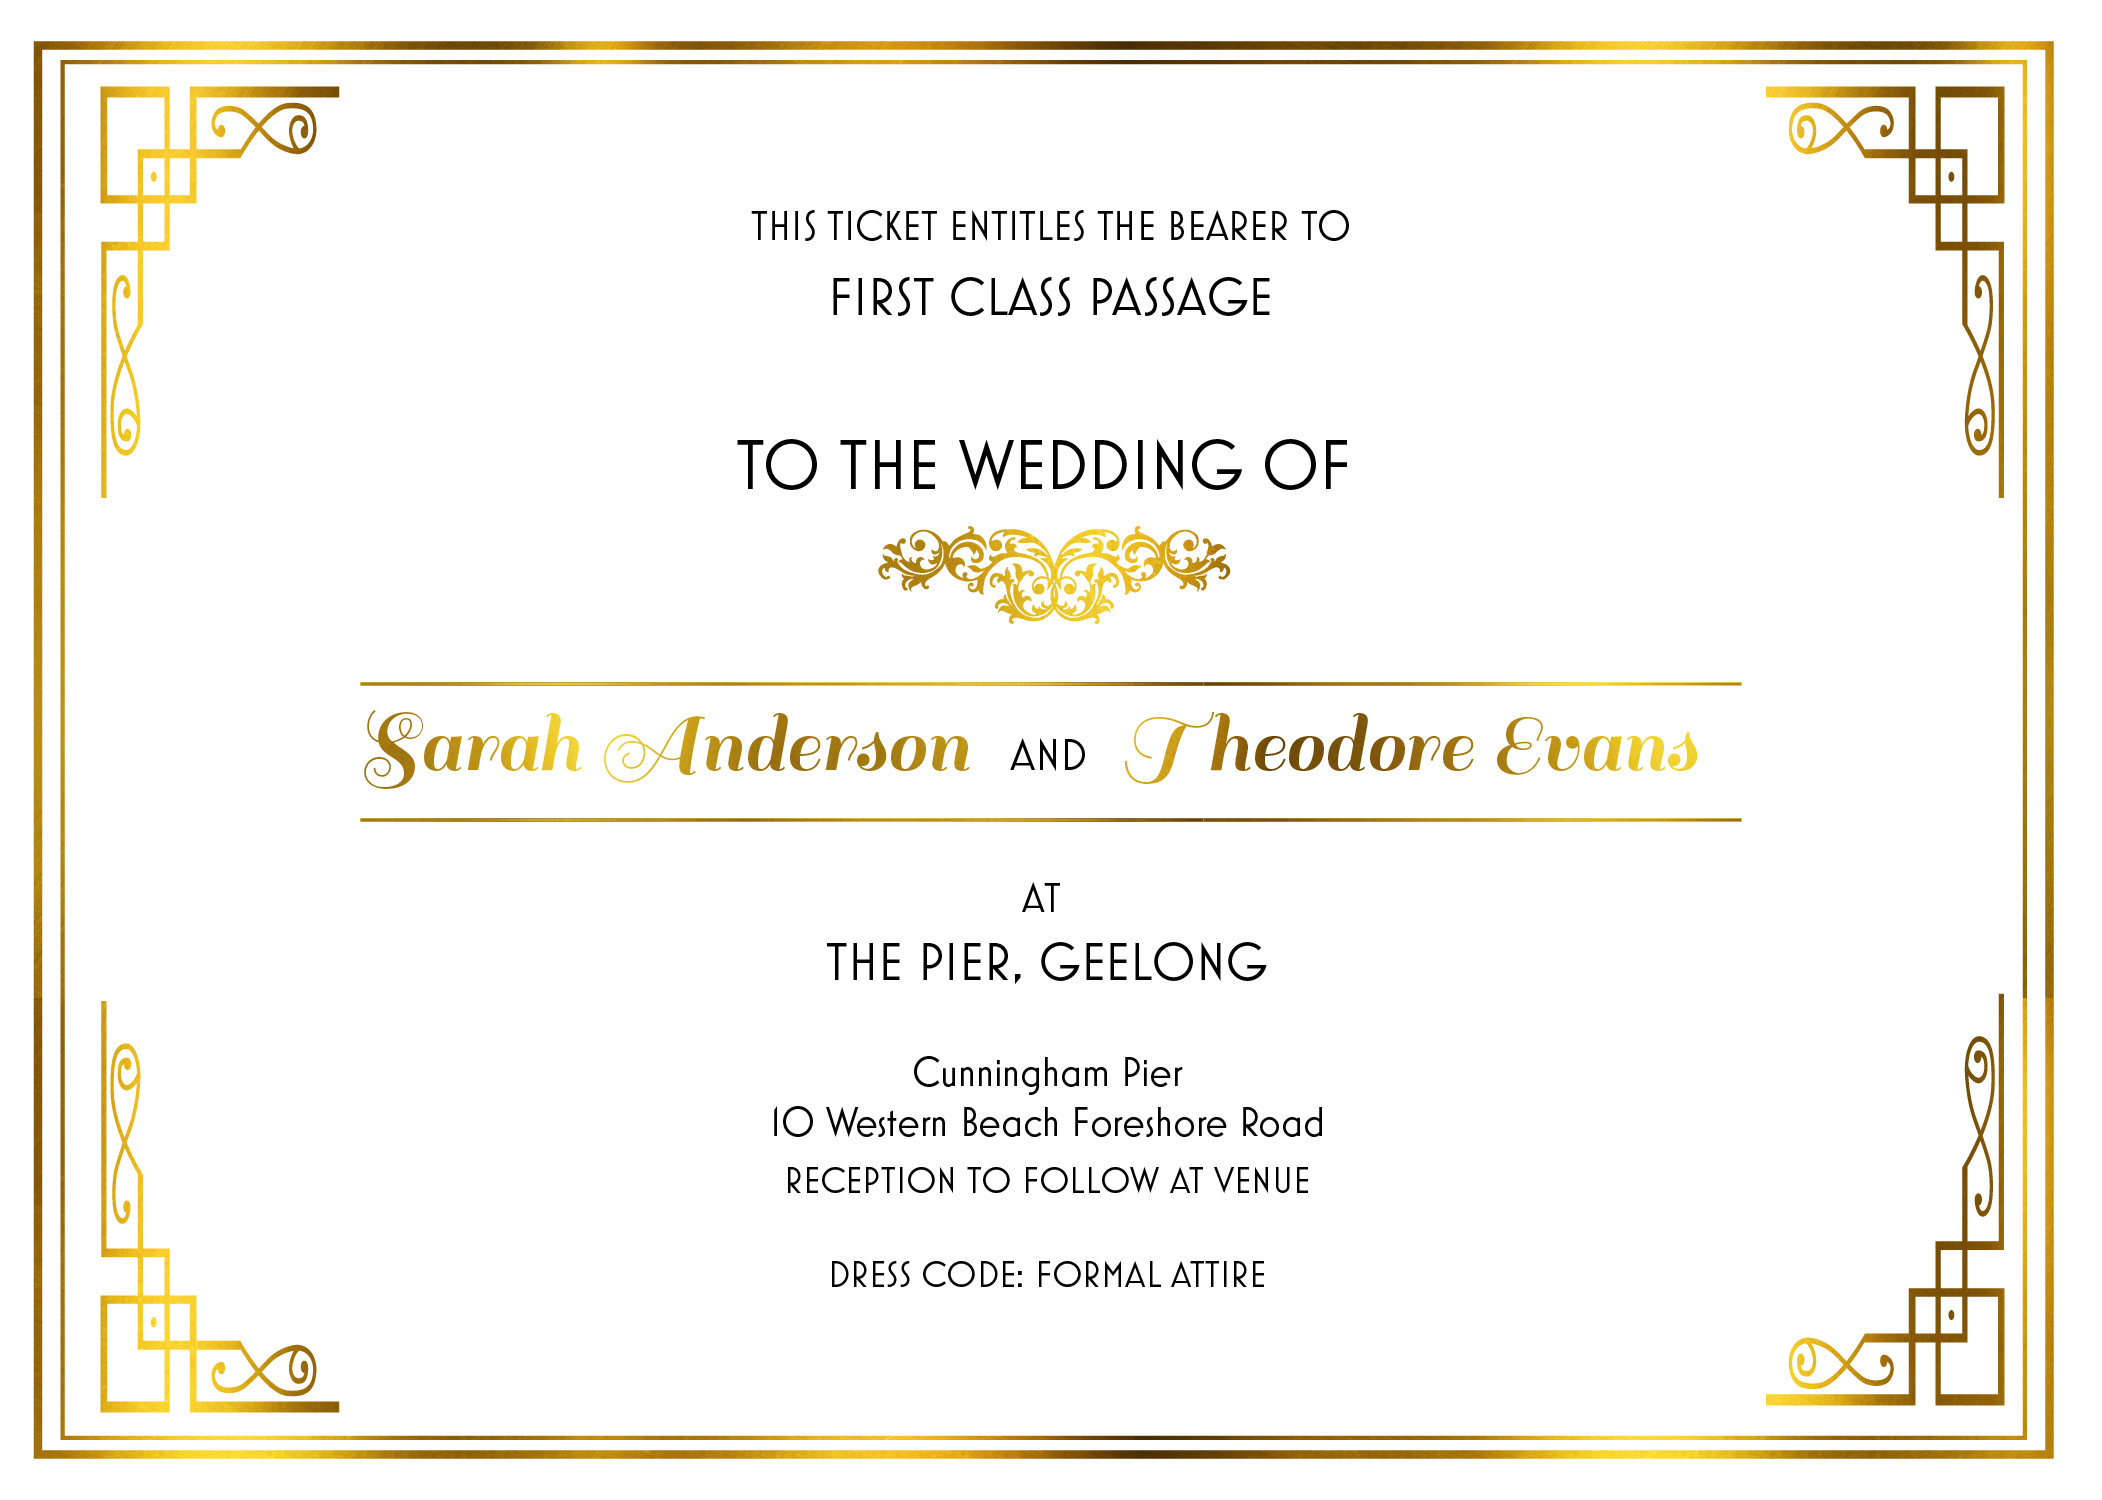 All Aboard - Wedding Invitations